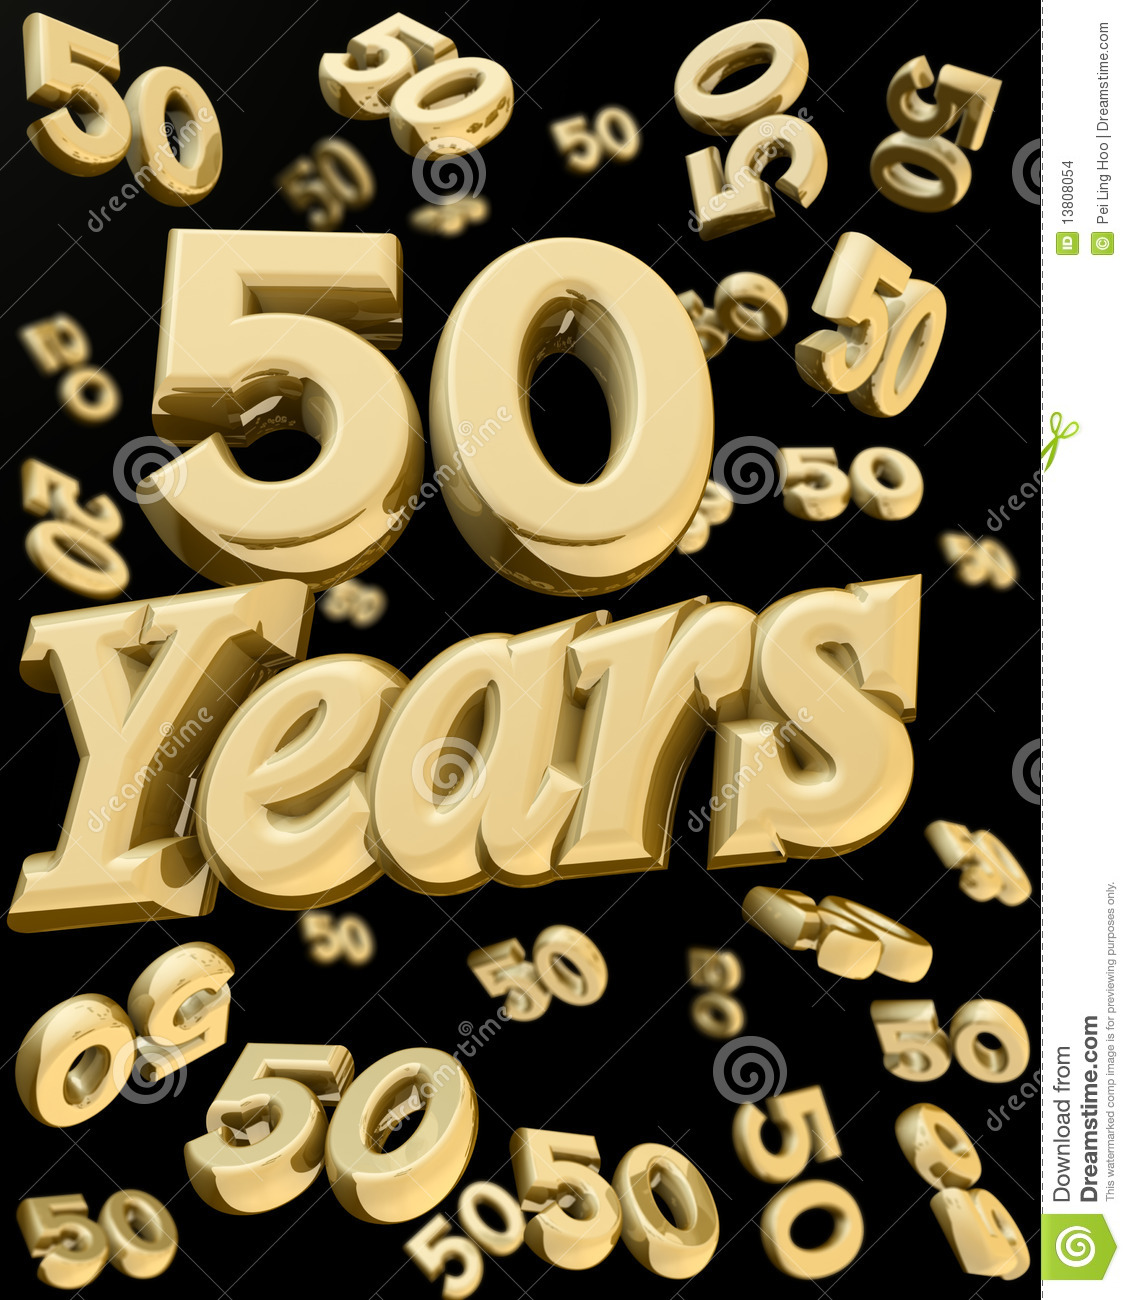 Falling Glitter Wallpaper Golden 50 Years Anniversary Stock Images Image 13808054